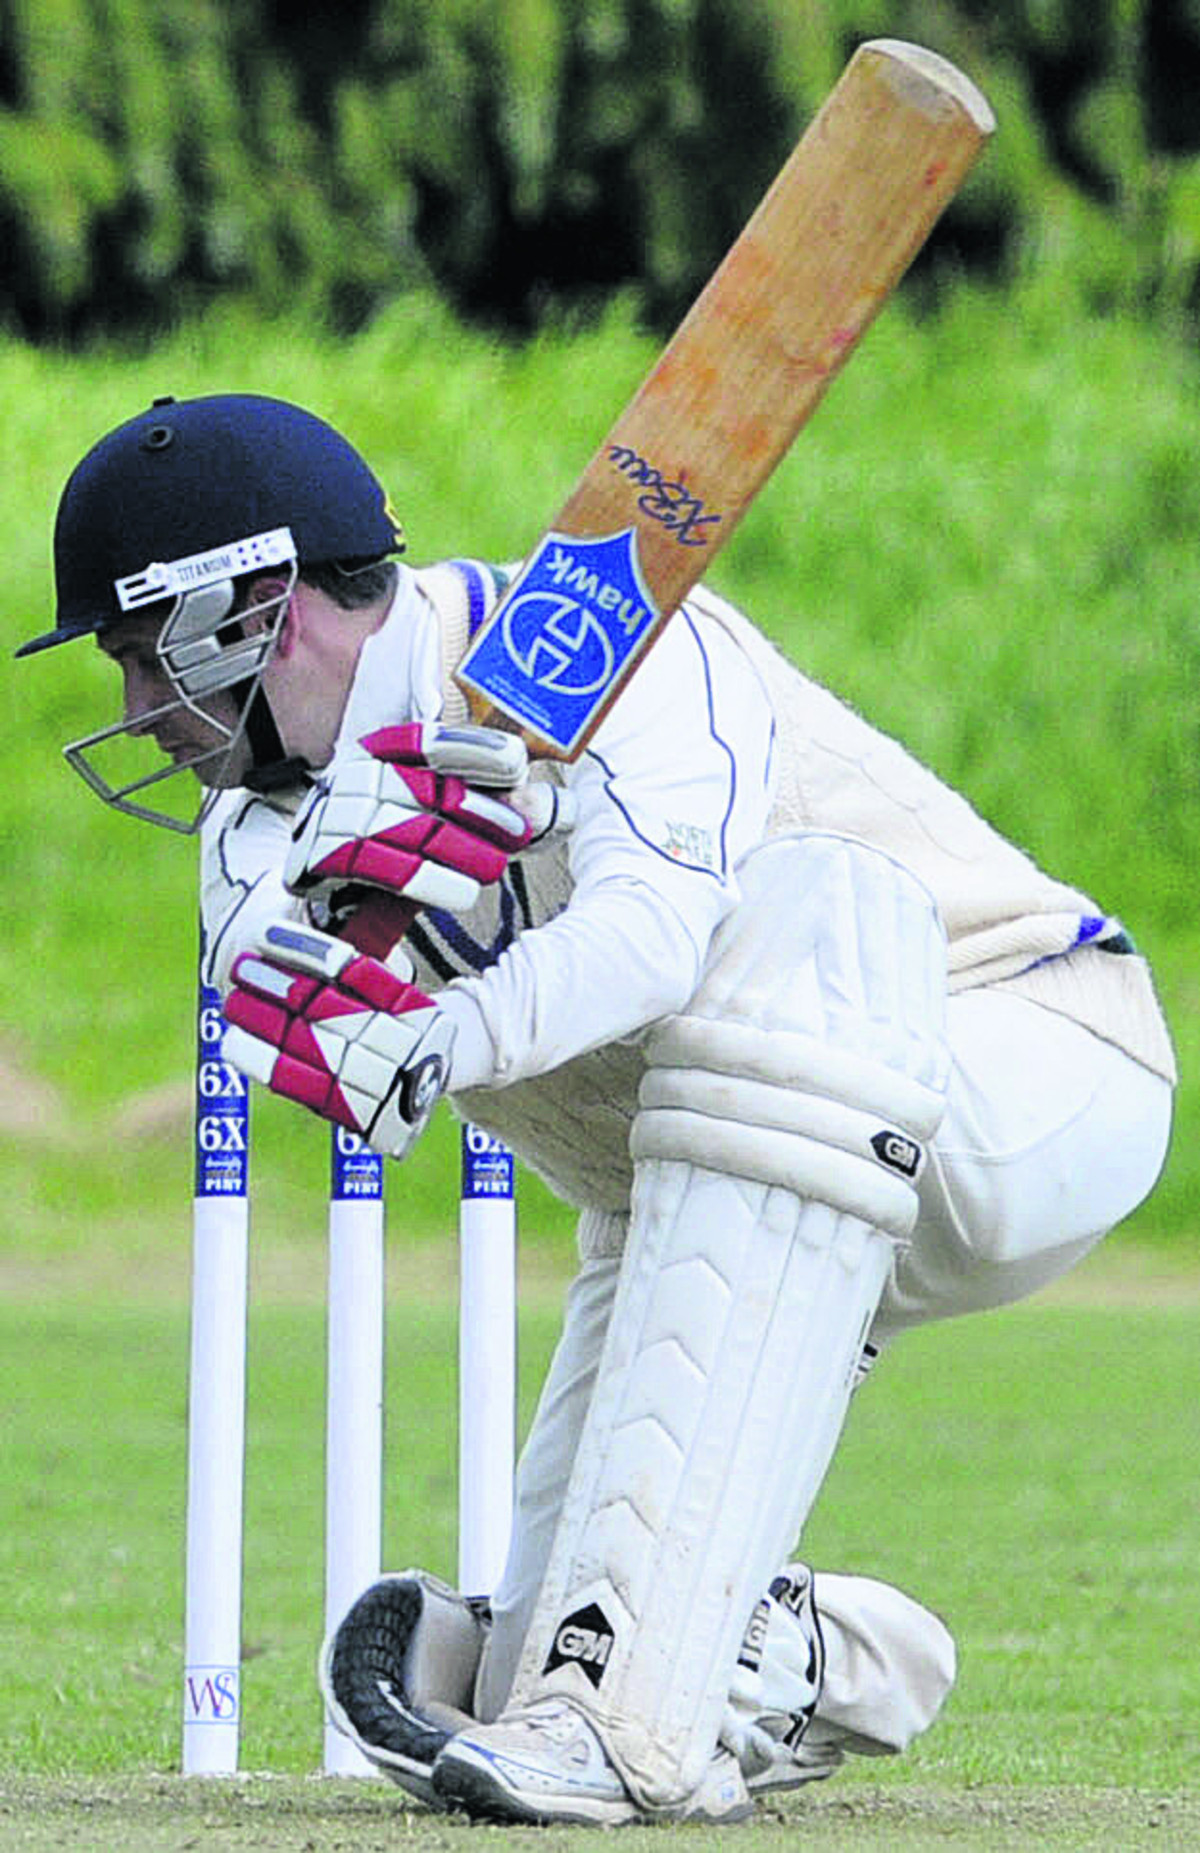 Marlborough batsman Dylan Bennie hits a boundary on his way to a century in his side's victory at Trowbridge on Saturday